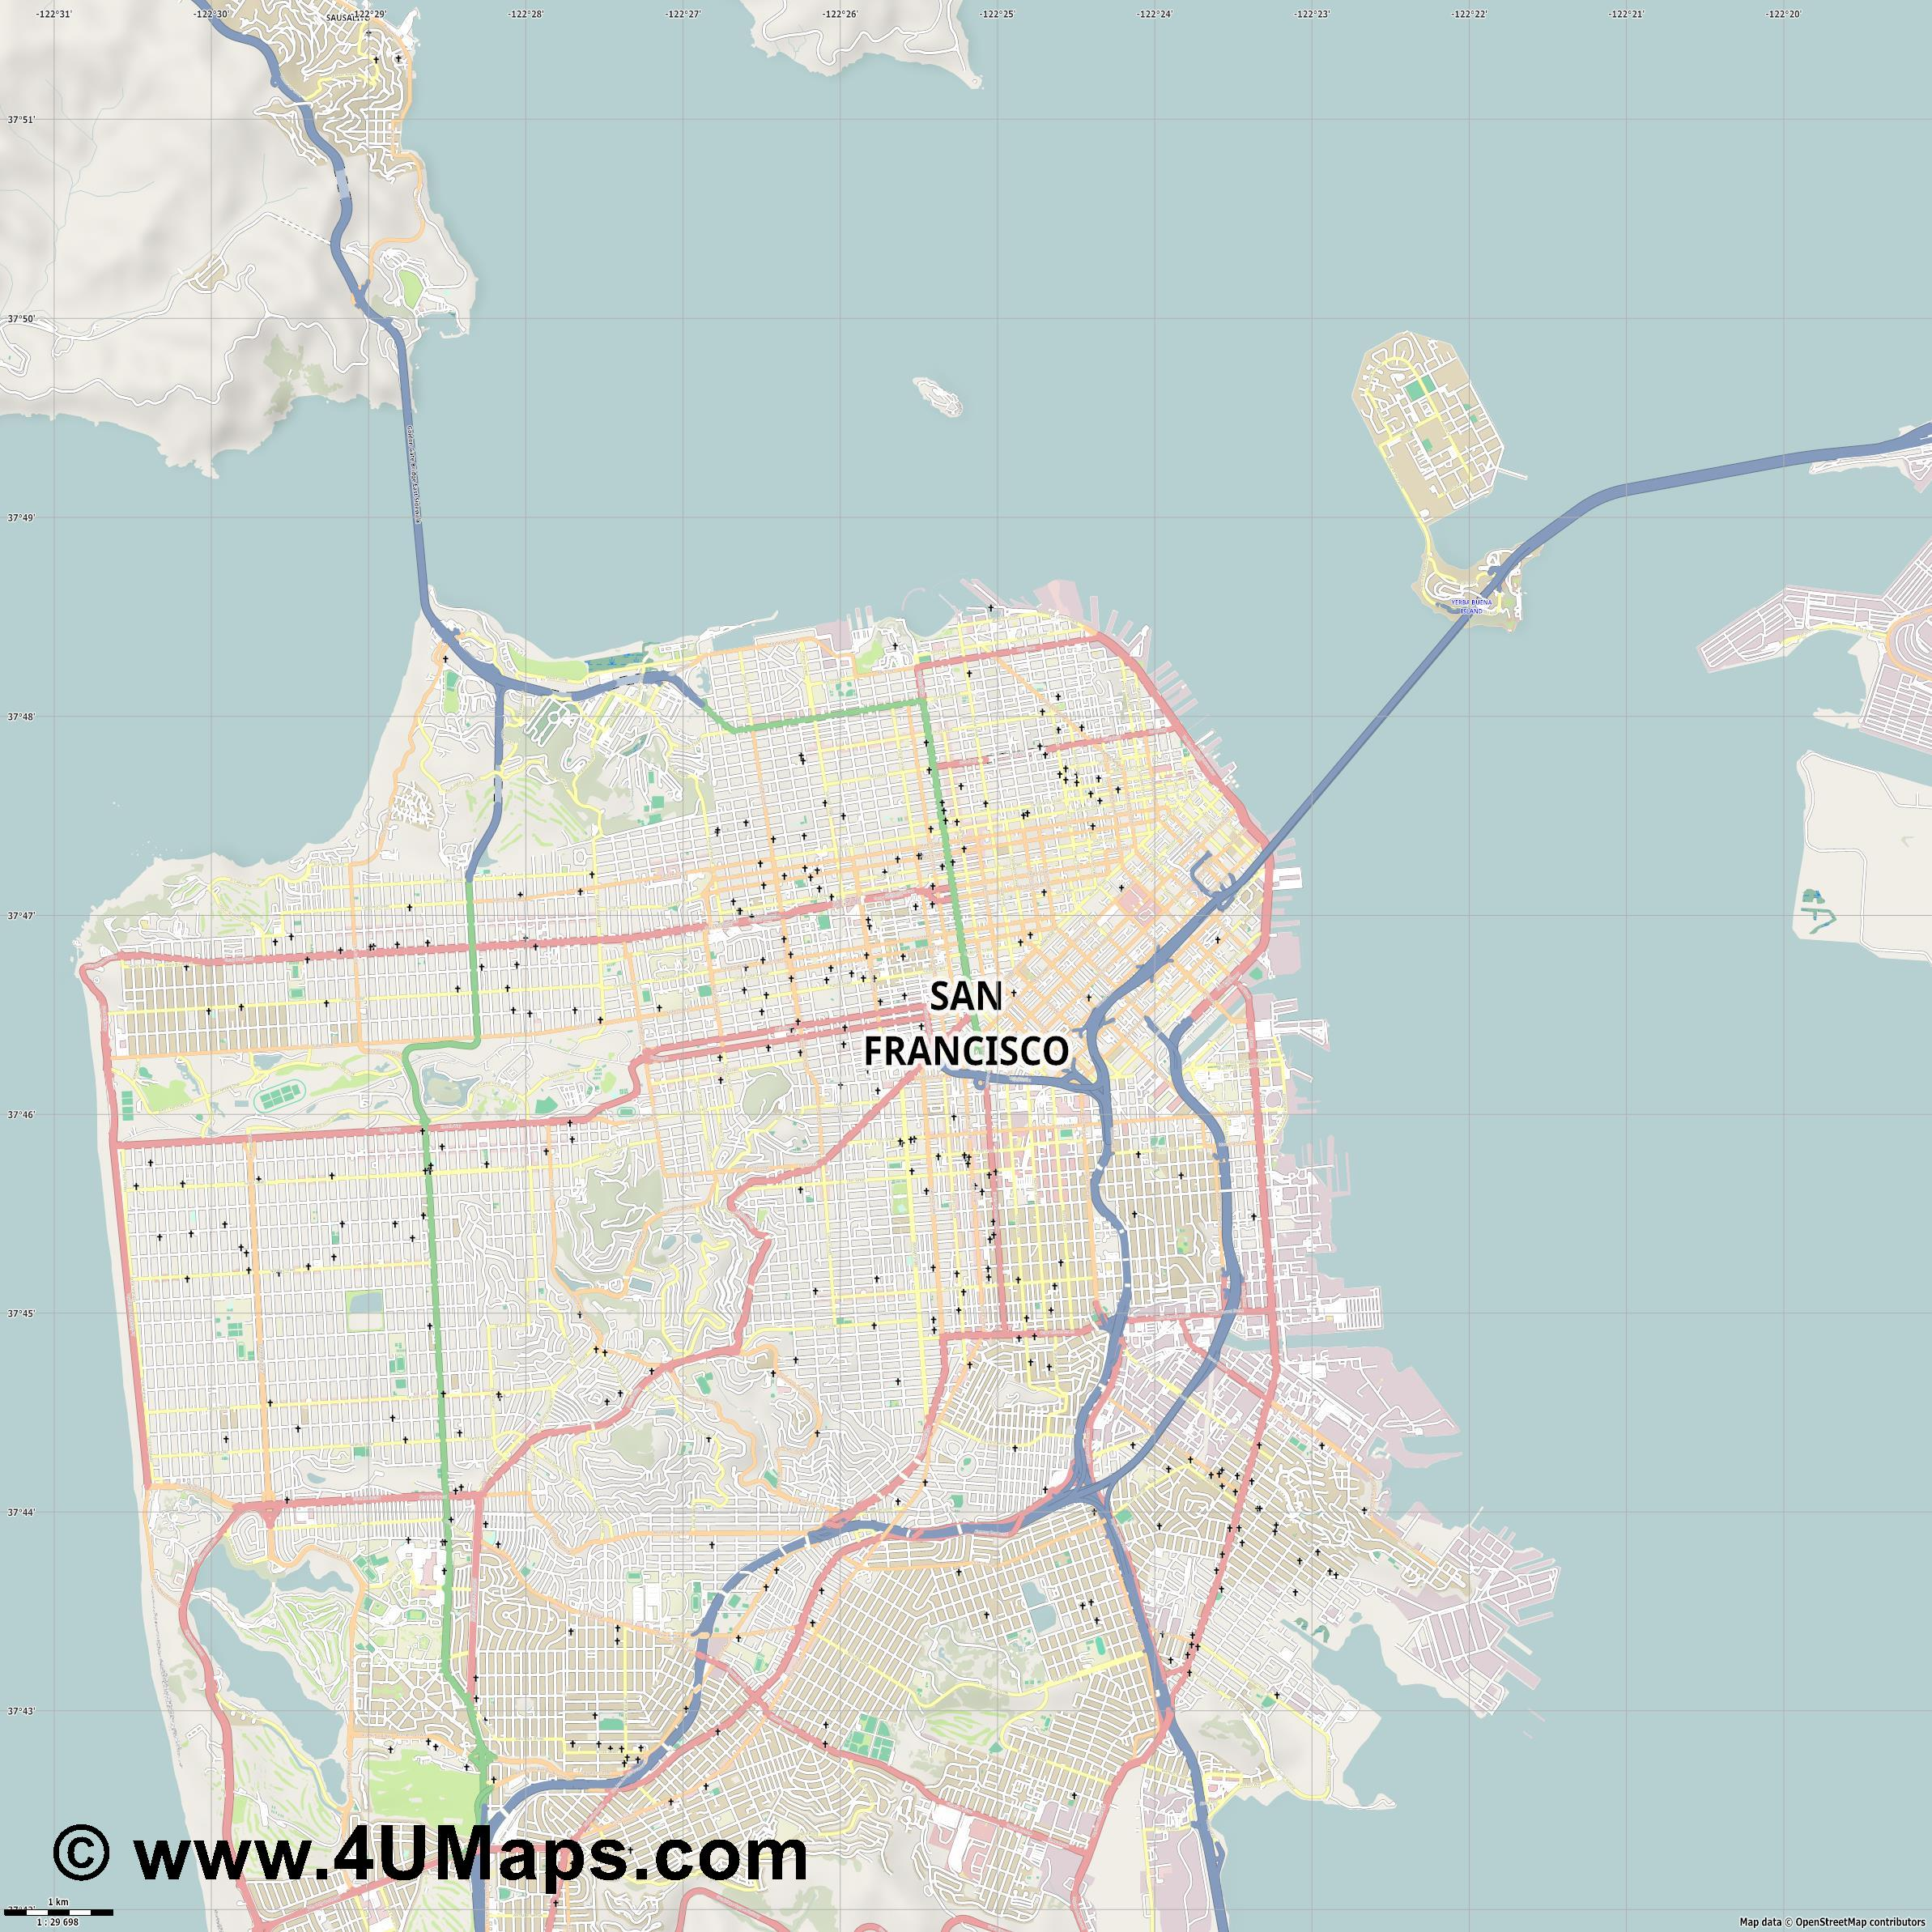 San Francisco  jpg high detail, large area preview vector city map